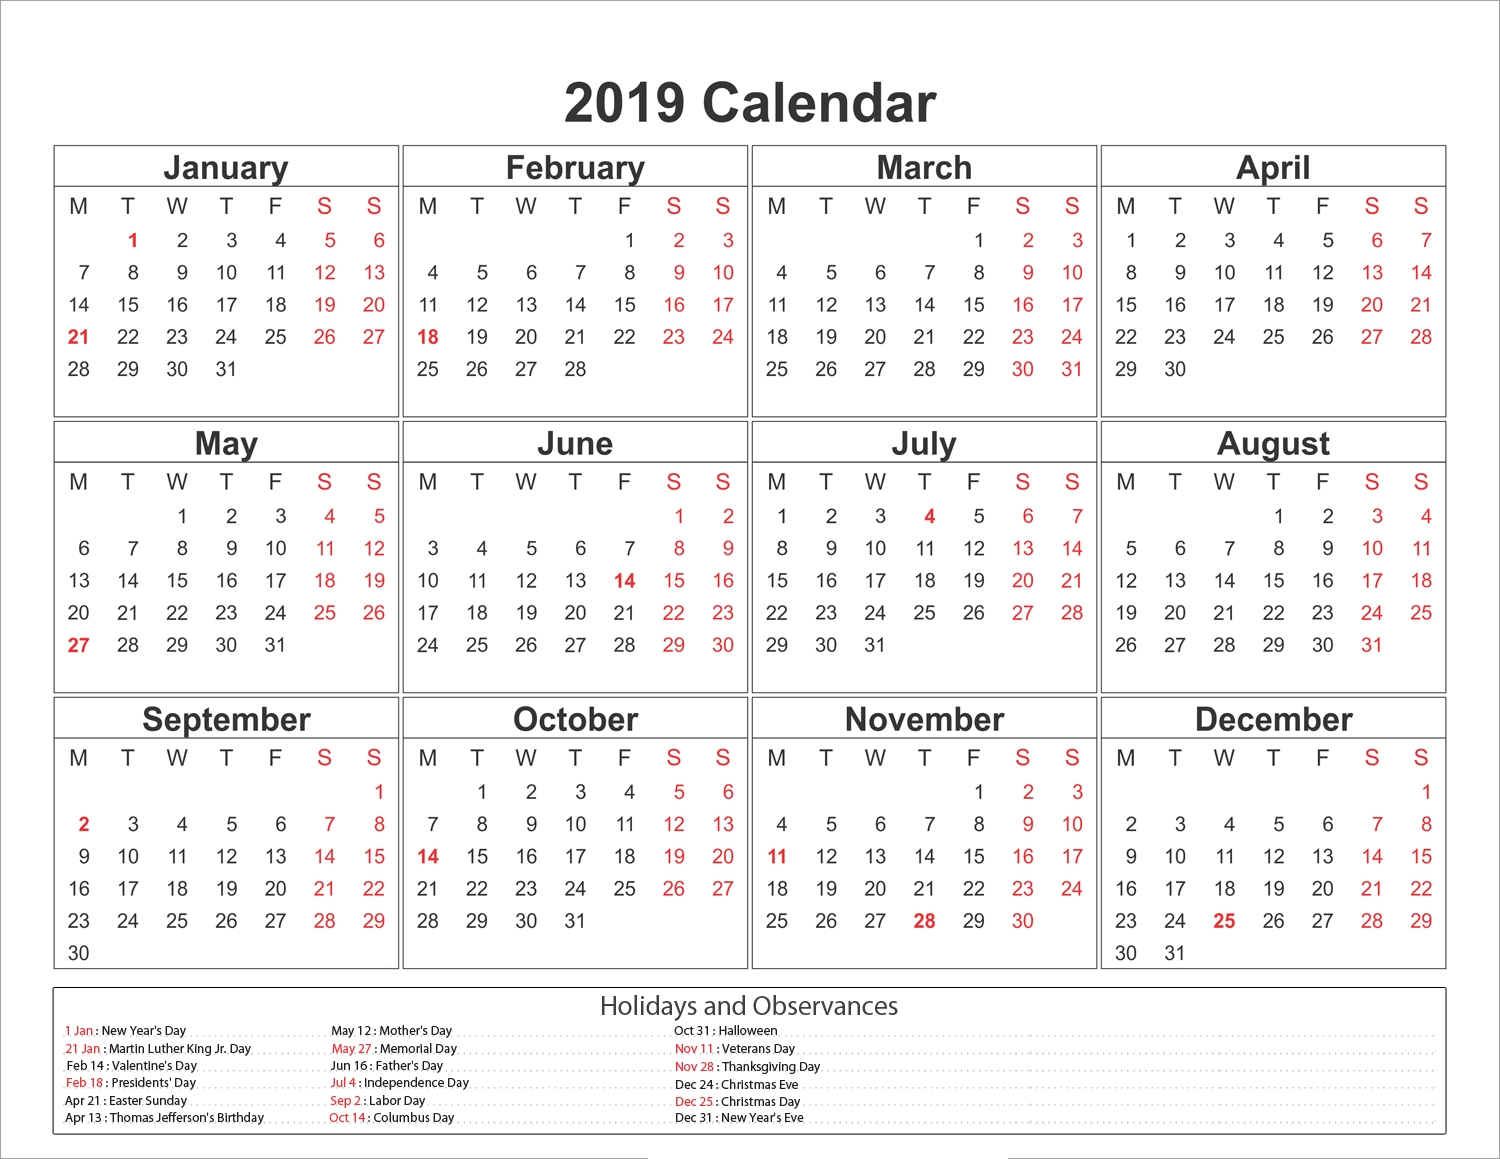 blank printable calendar 2019 with holidays printableshelter::Monthly 2019 Holidays Calendar Templates